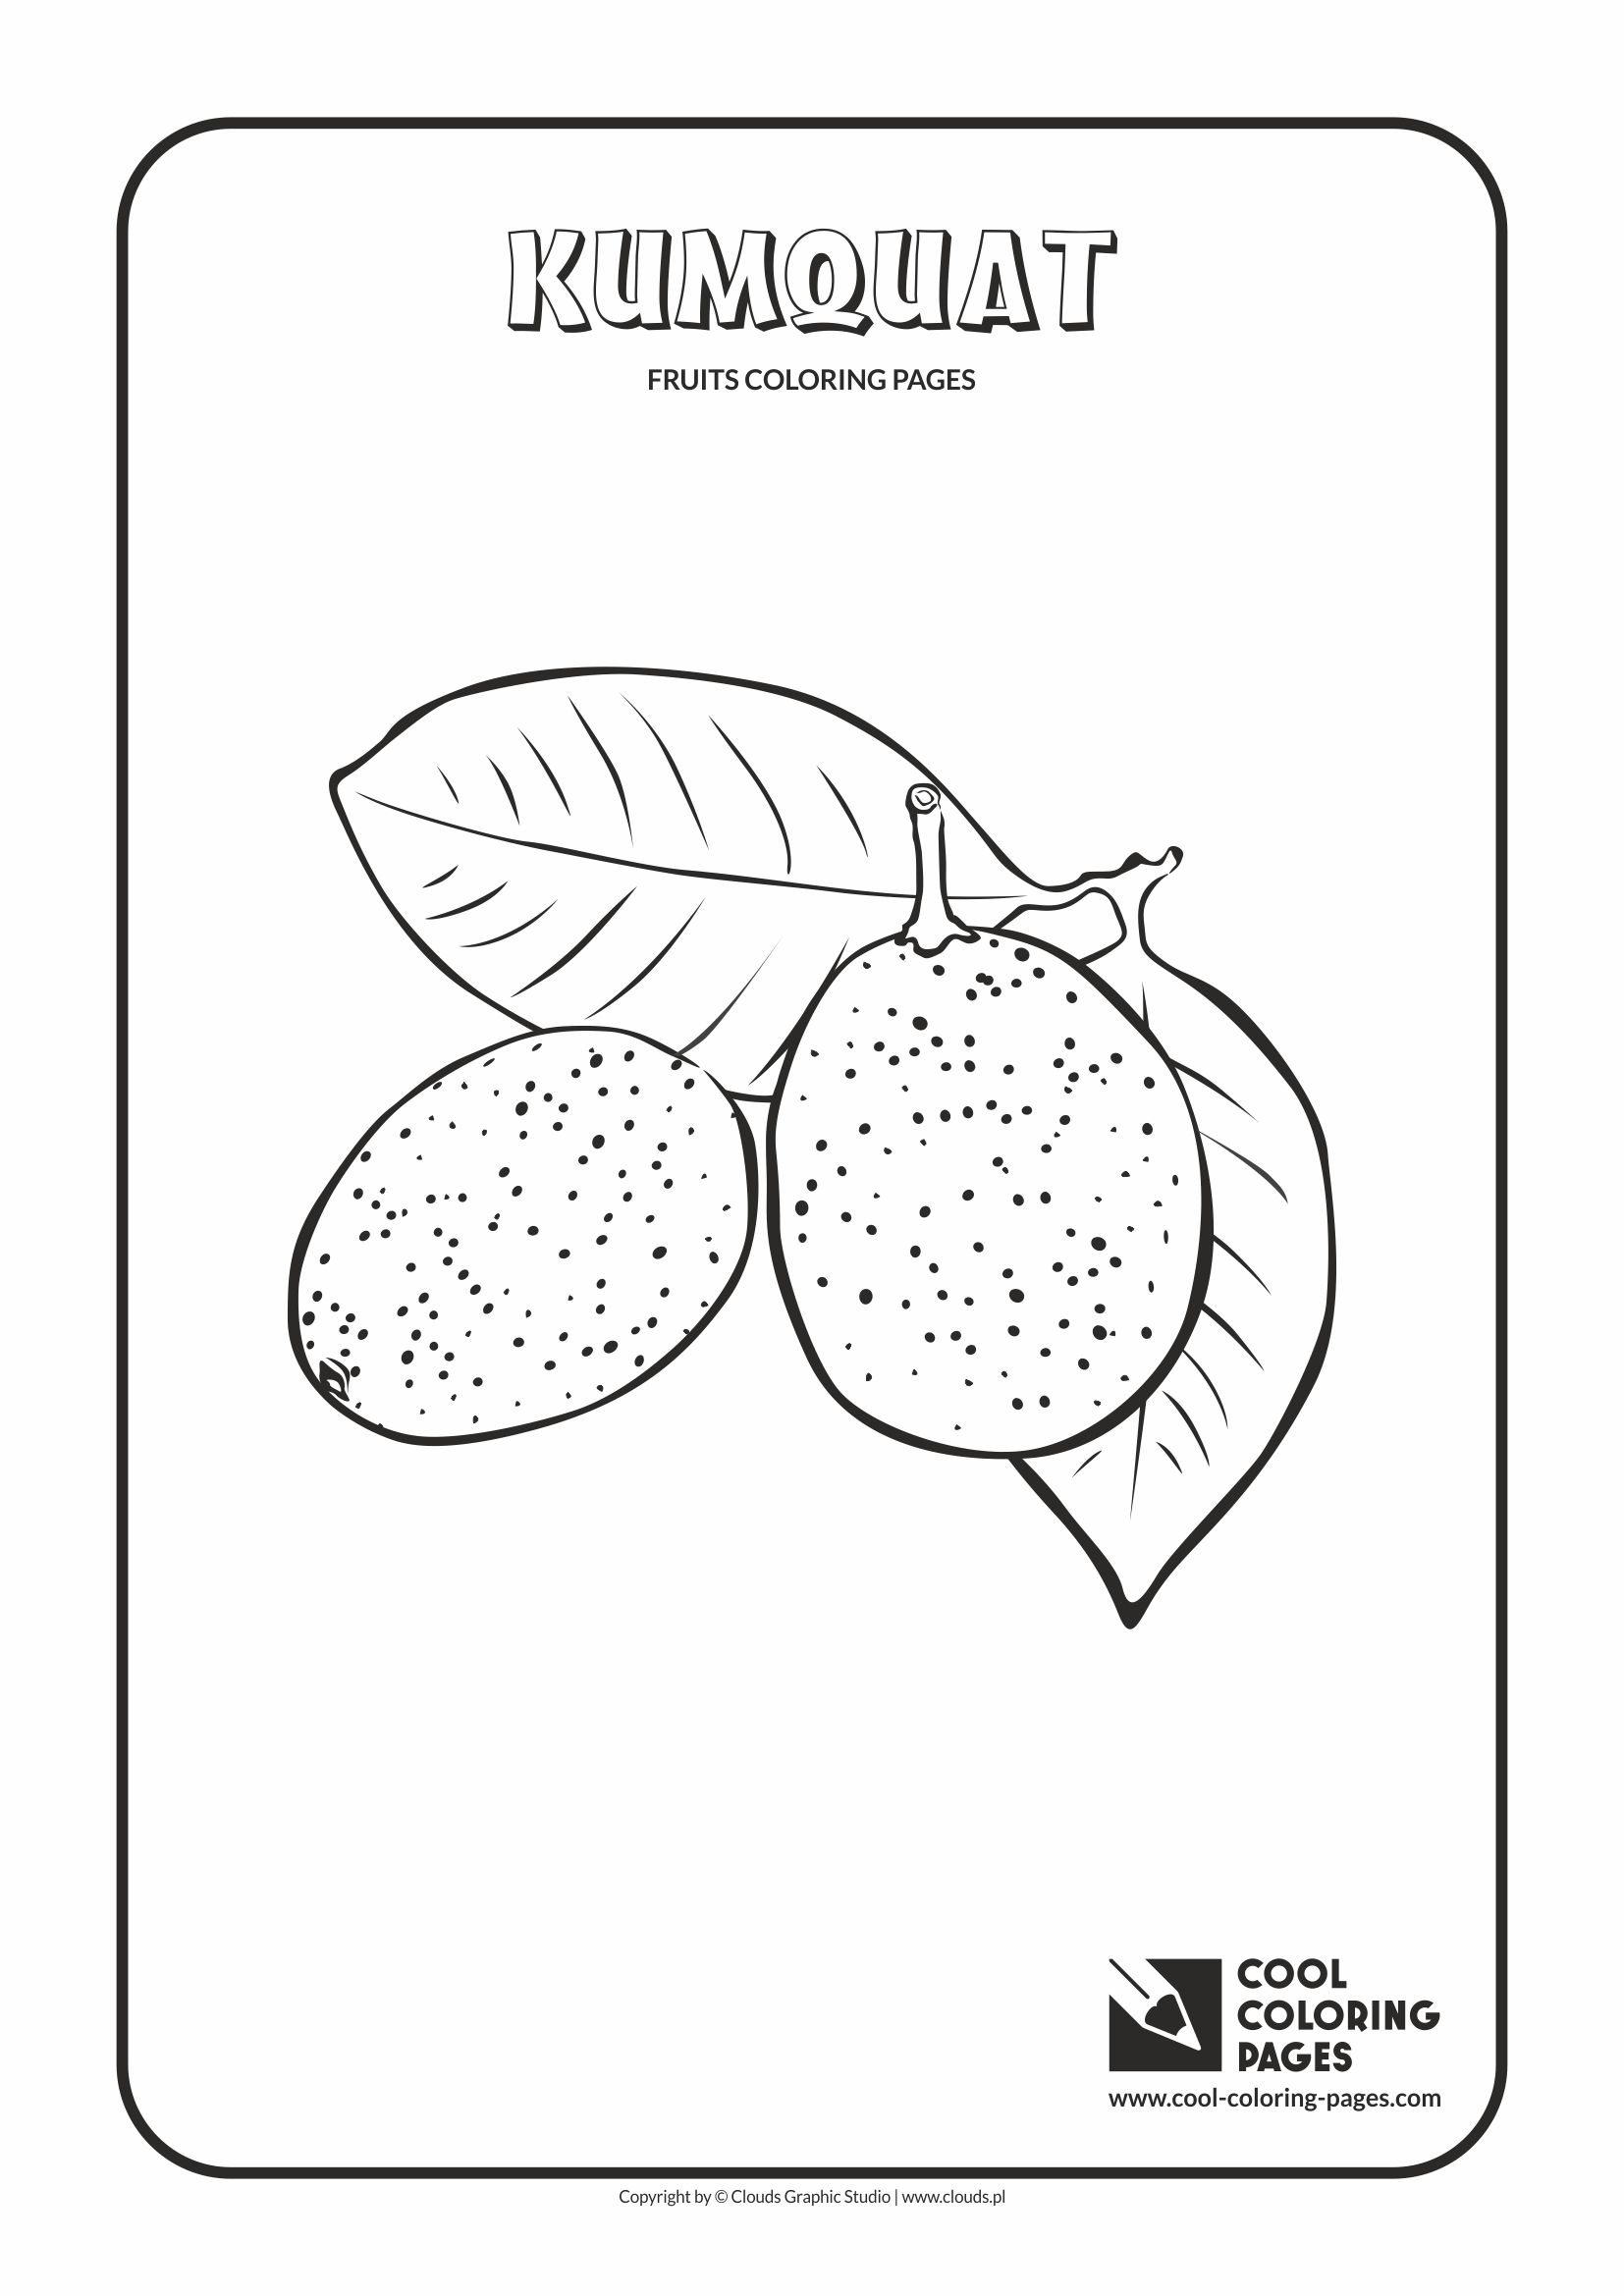 Cool Coloring Pages - Plants / Kumquat / Coloring page with kumquat